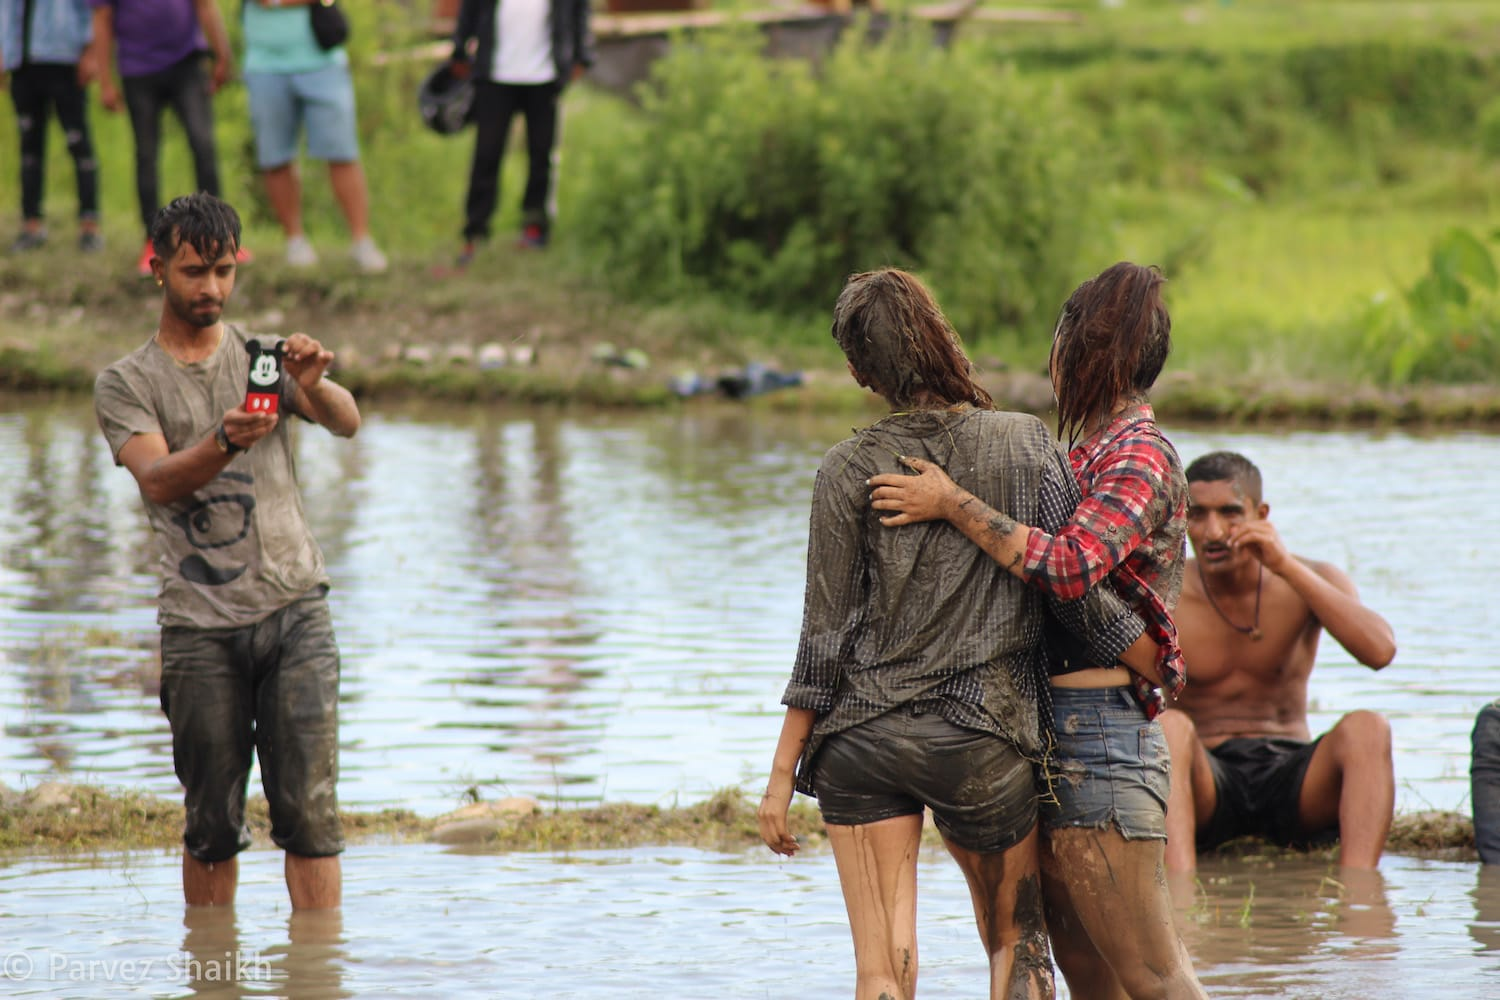 Visitors Having Fun in Mud at the Rice Planting Festival in Nepal